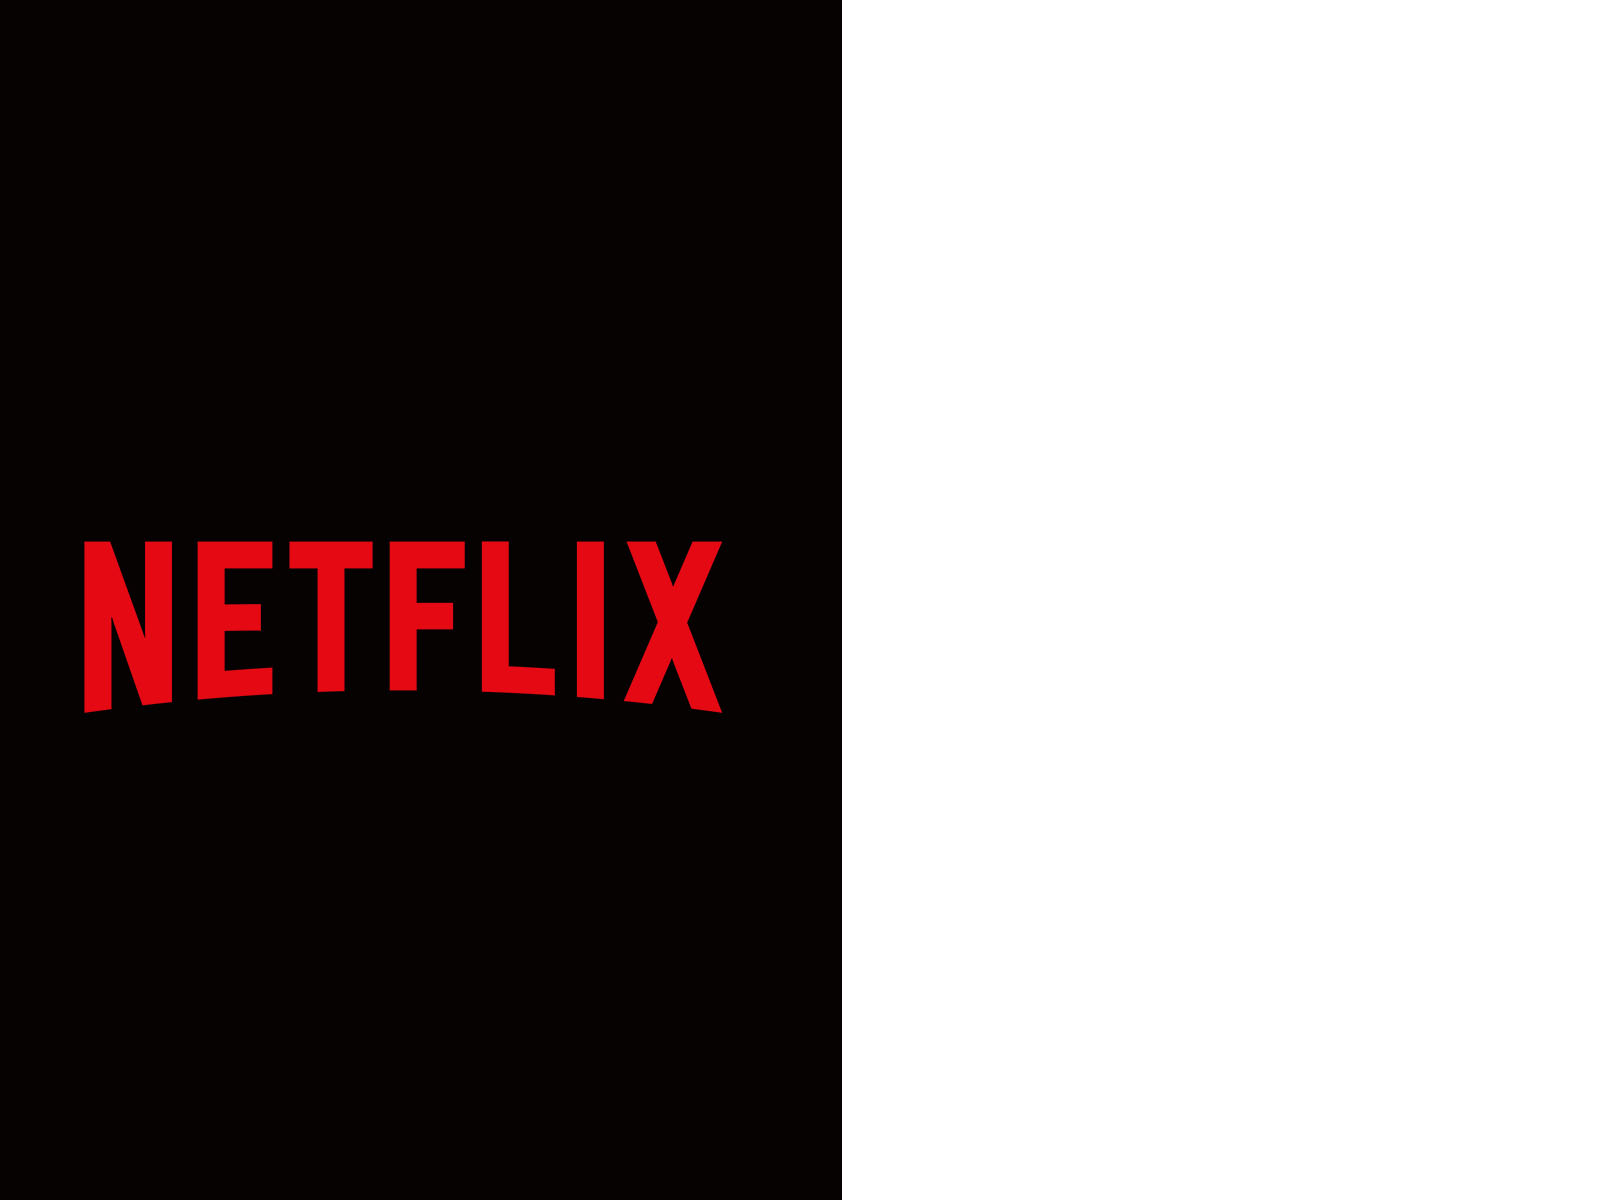 Netflix Powerpoint Background